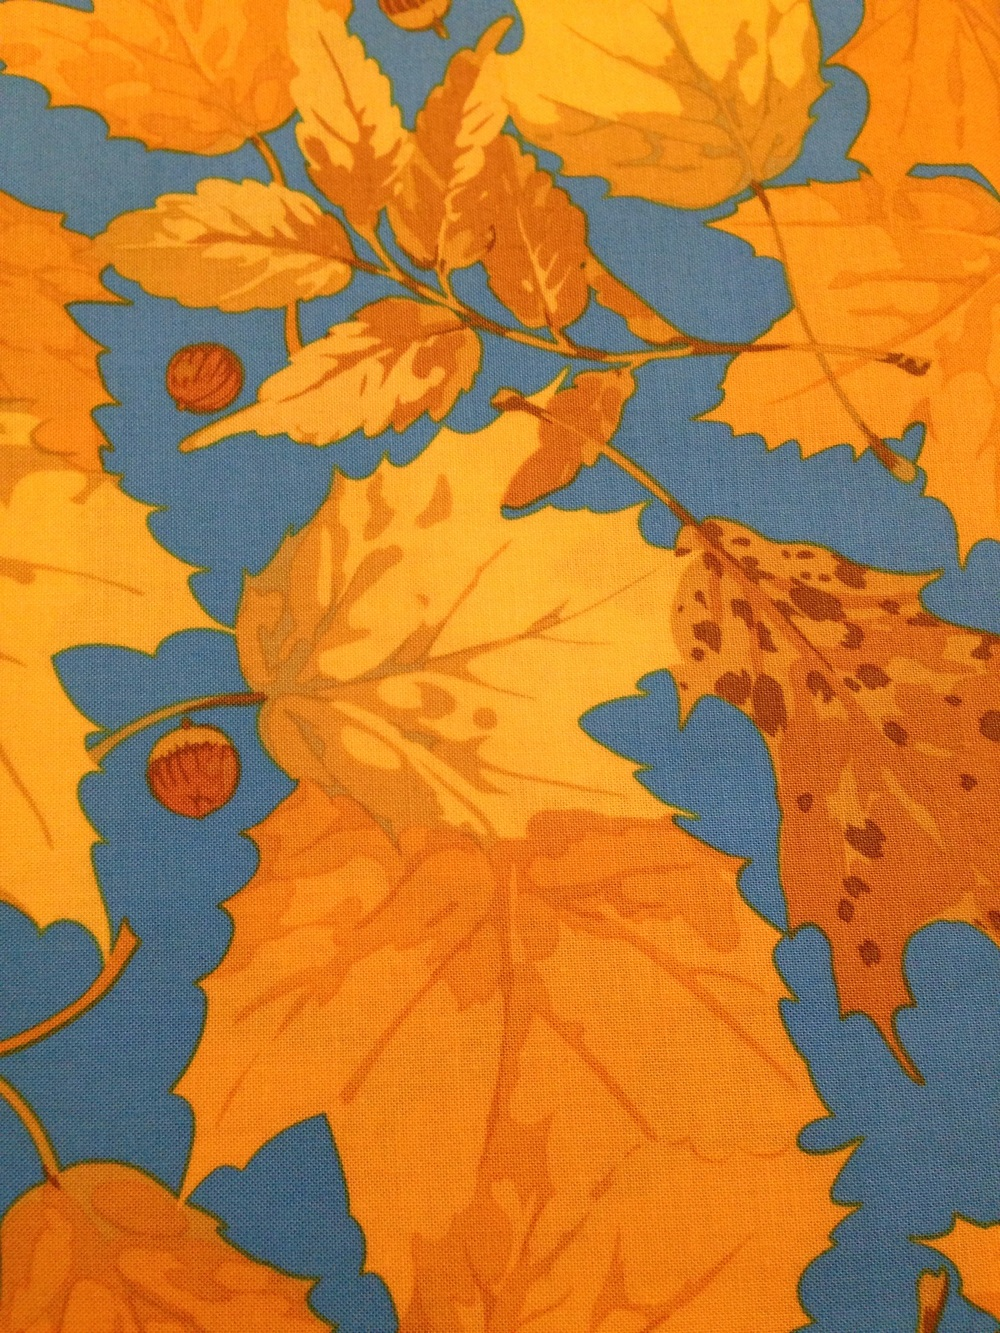 A fall print by Martha Negley